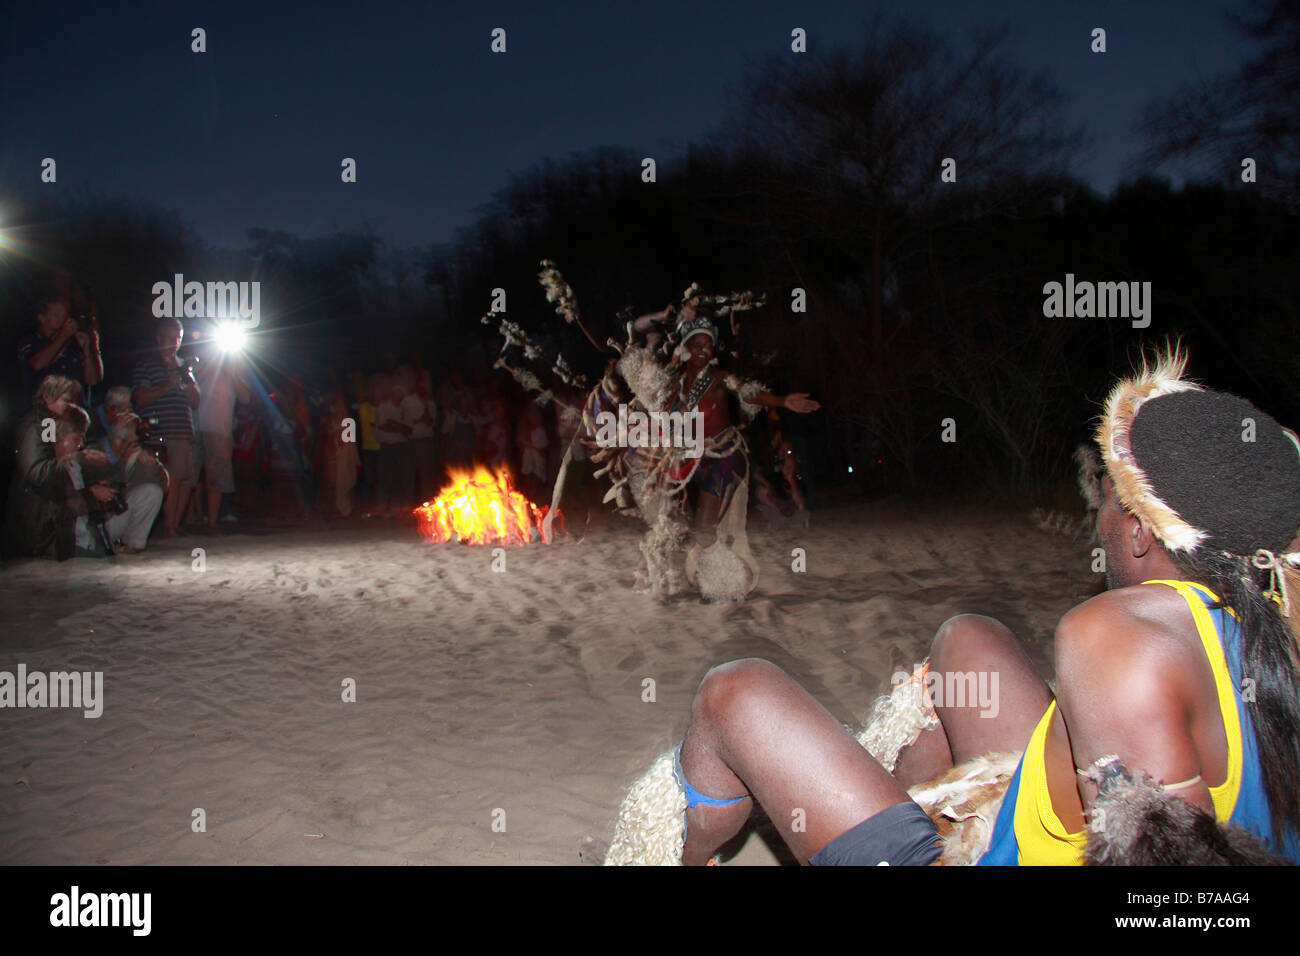 Tourists watching an outdoors Tonga dance performance at night - Stock Image